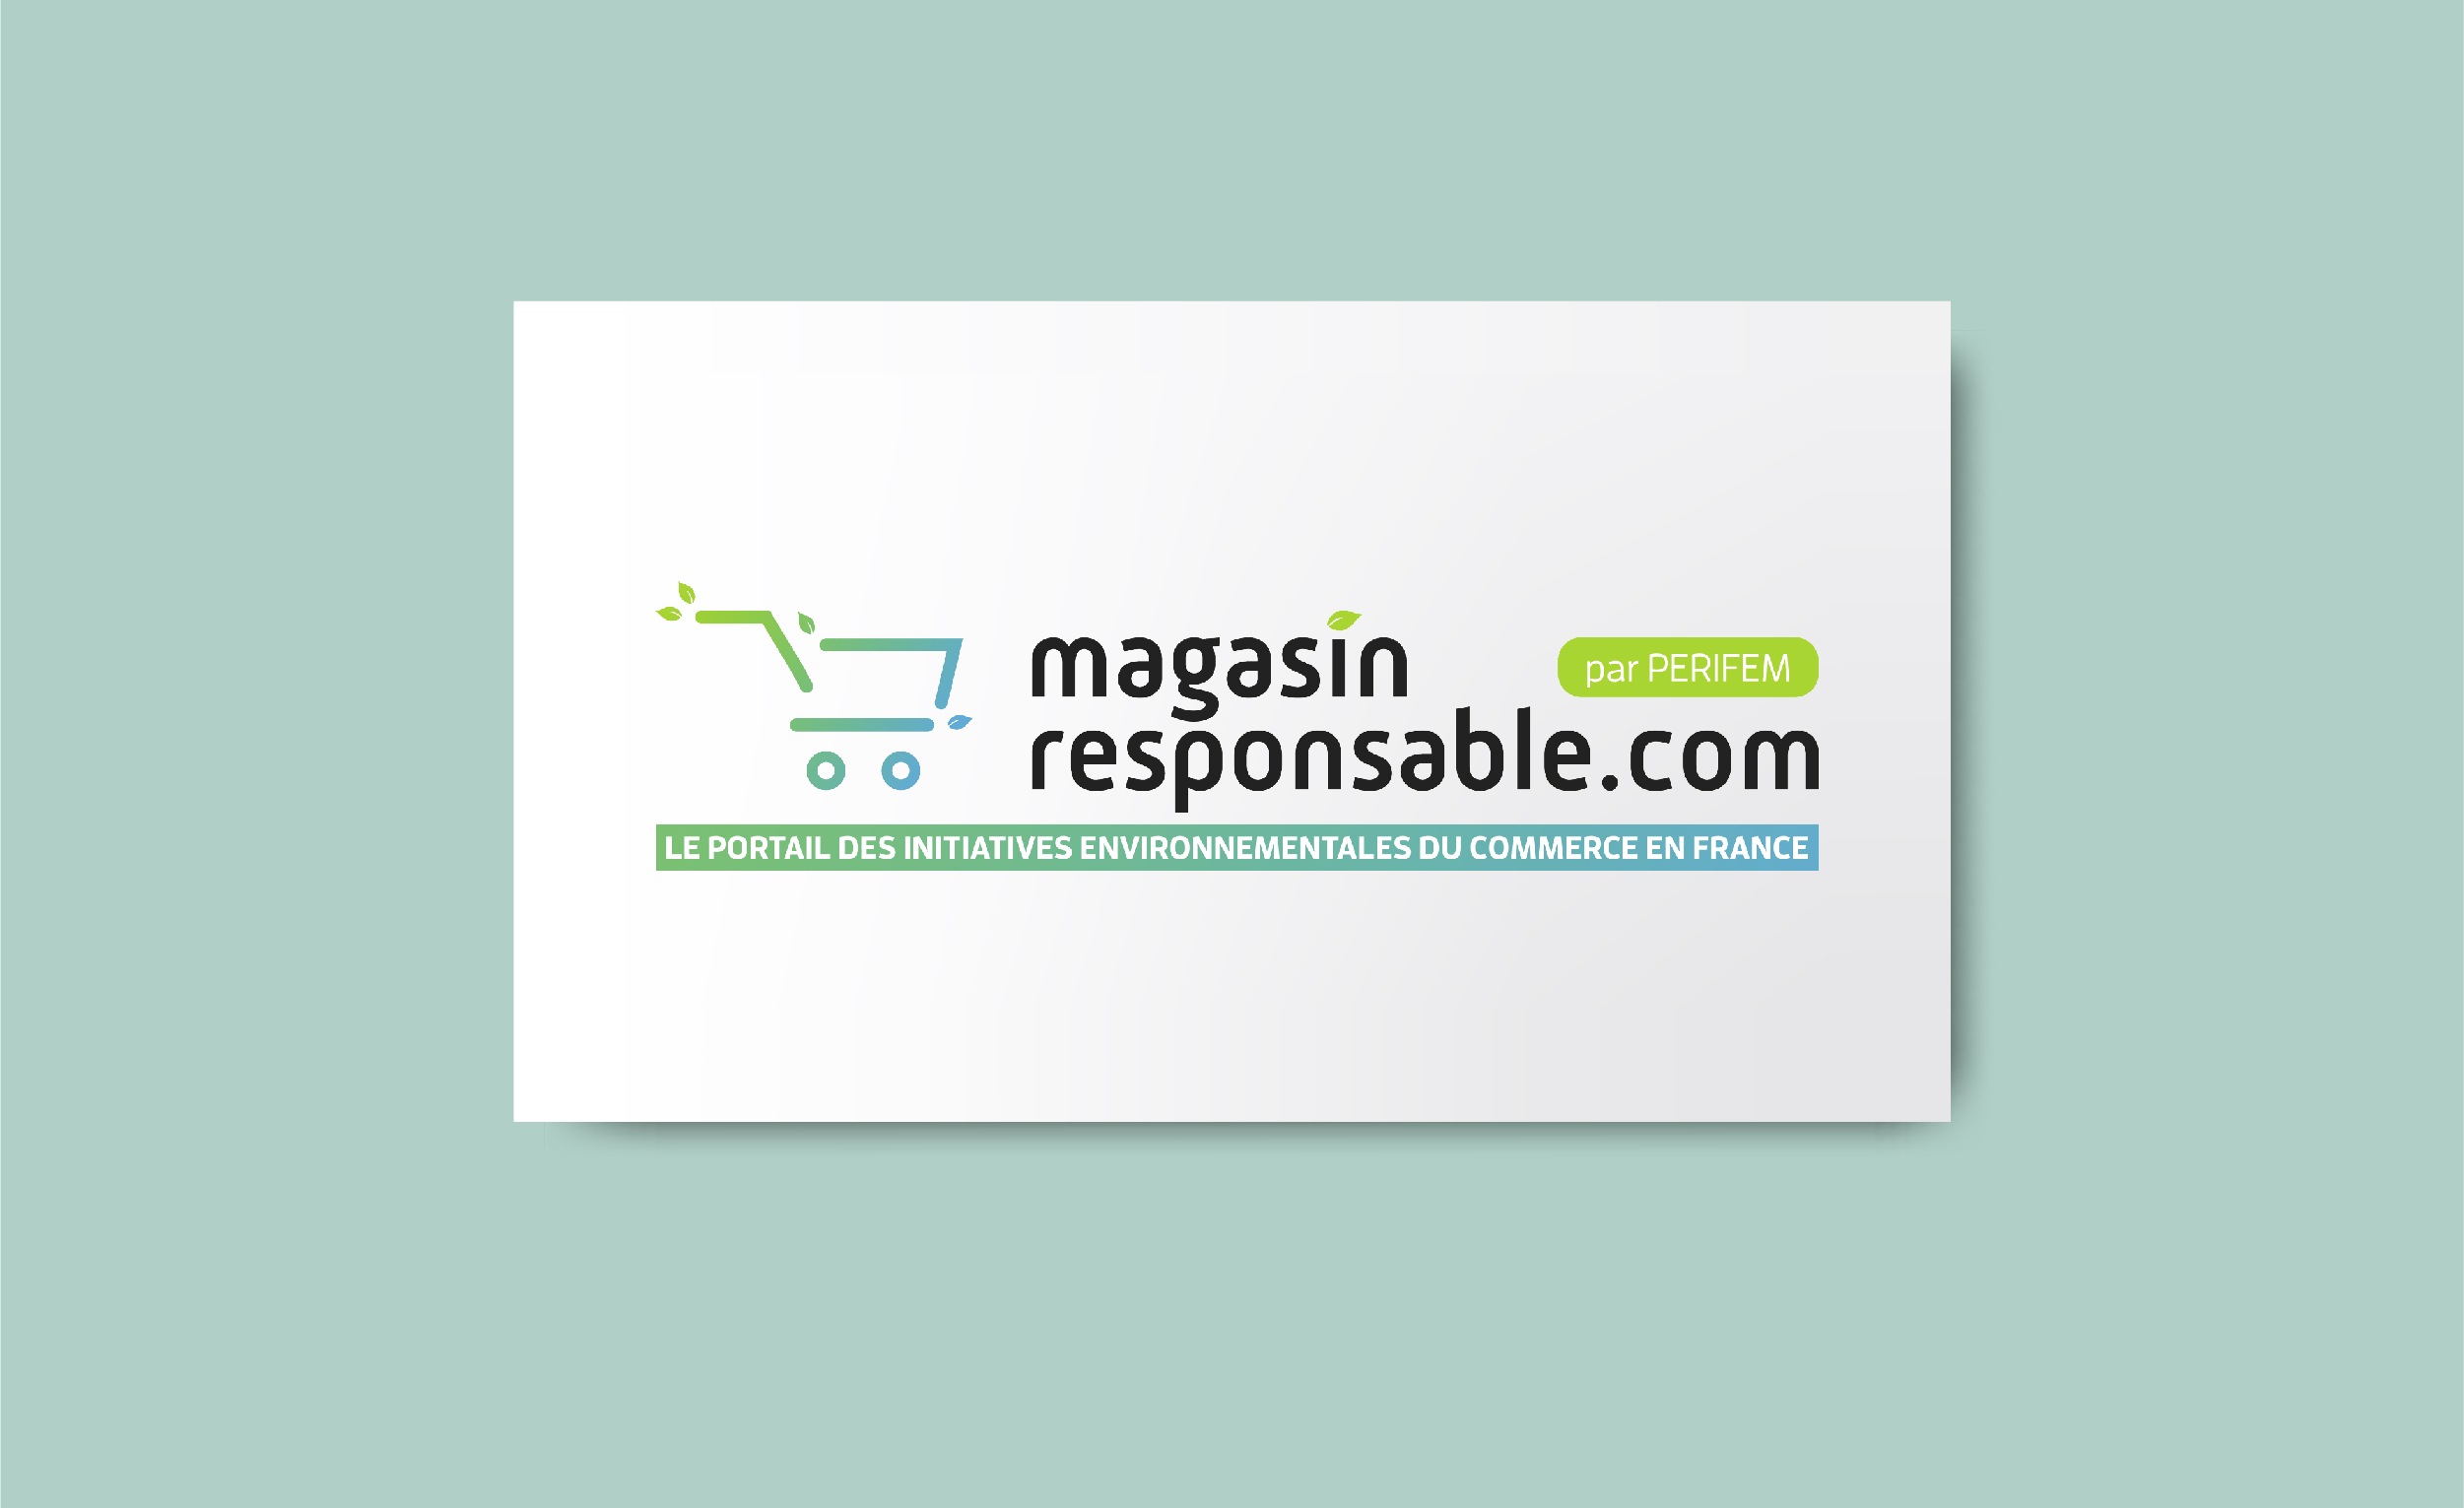 Magasin Responsable.com